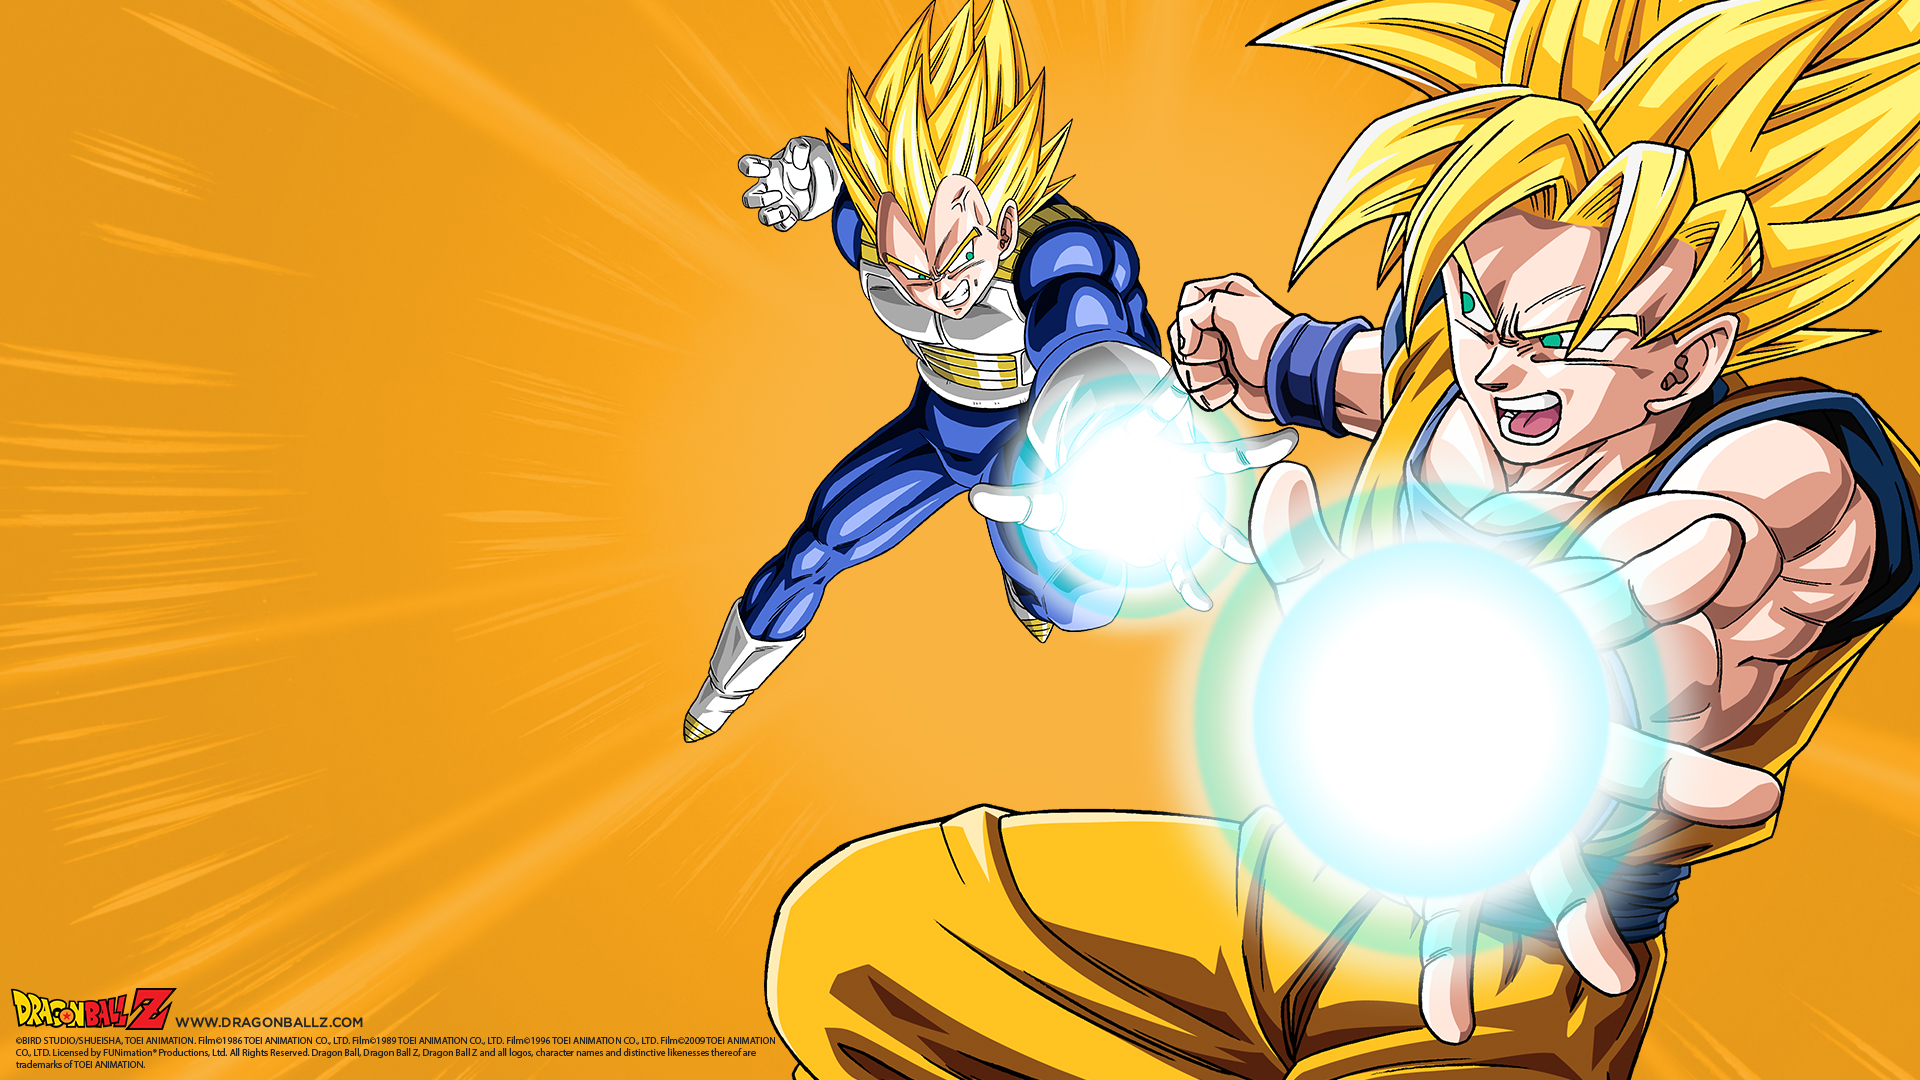 Dragon Ball Z Wallpaper 1920x1080 6035 Wallpaper 1920x1080